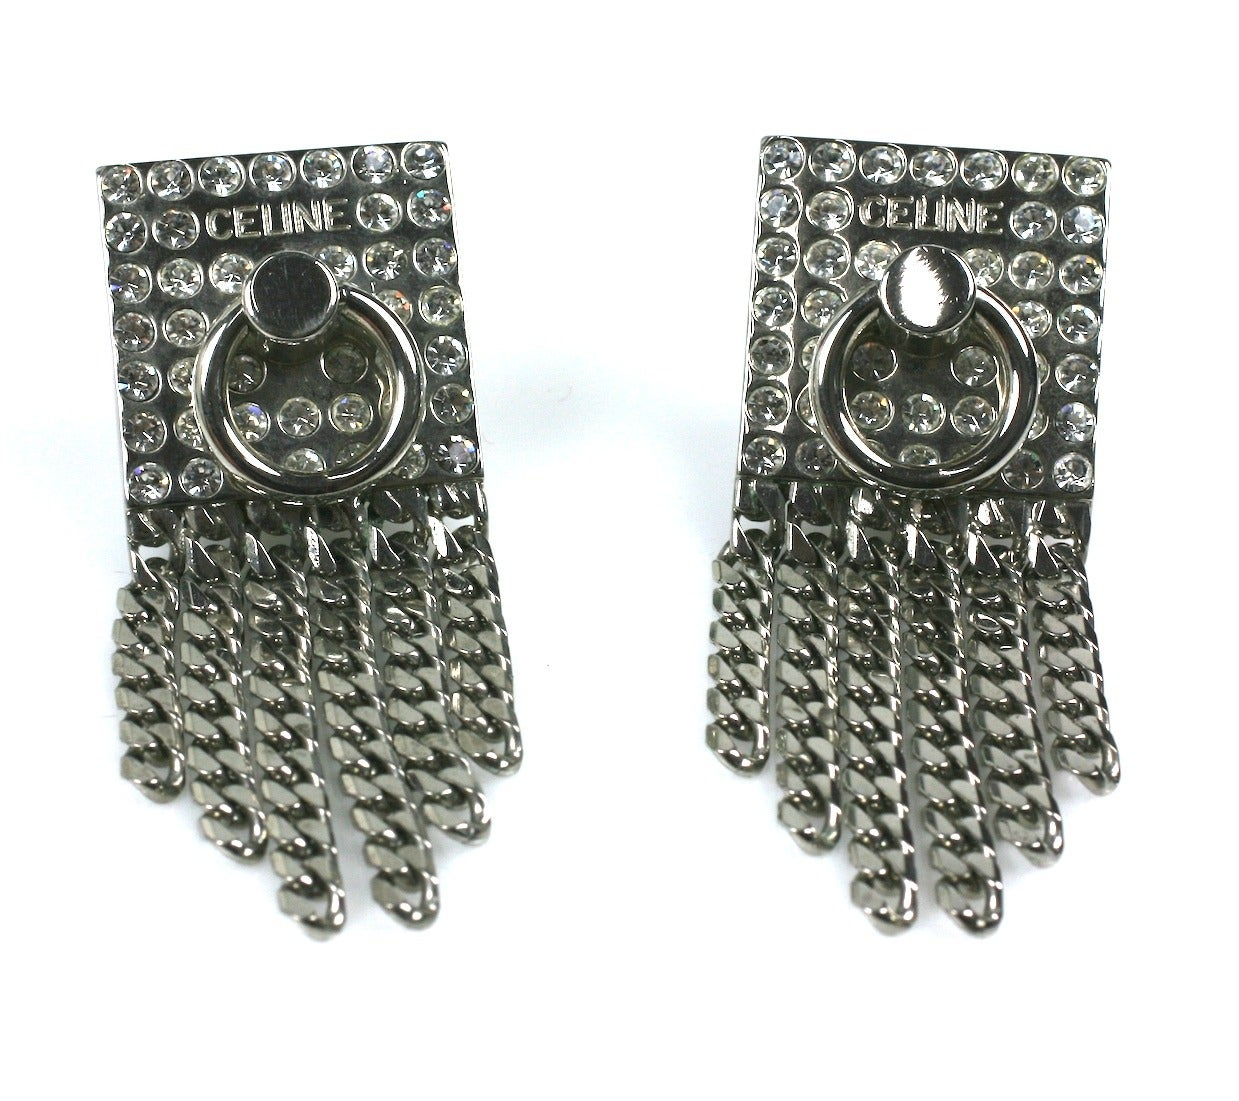 Celine Pave Silver Chain Earrings In Excellent Condition For Sale In Riverdale, NY